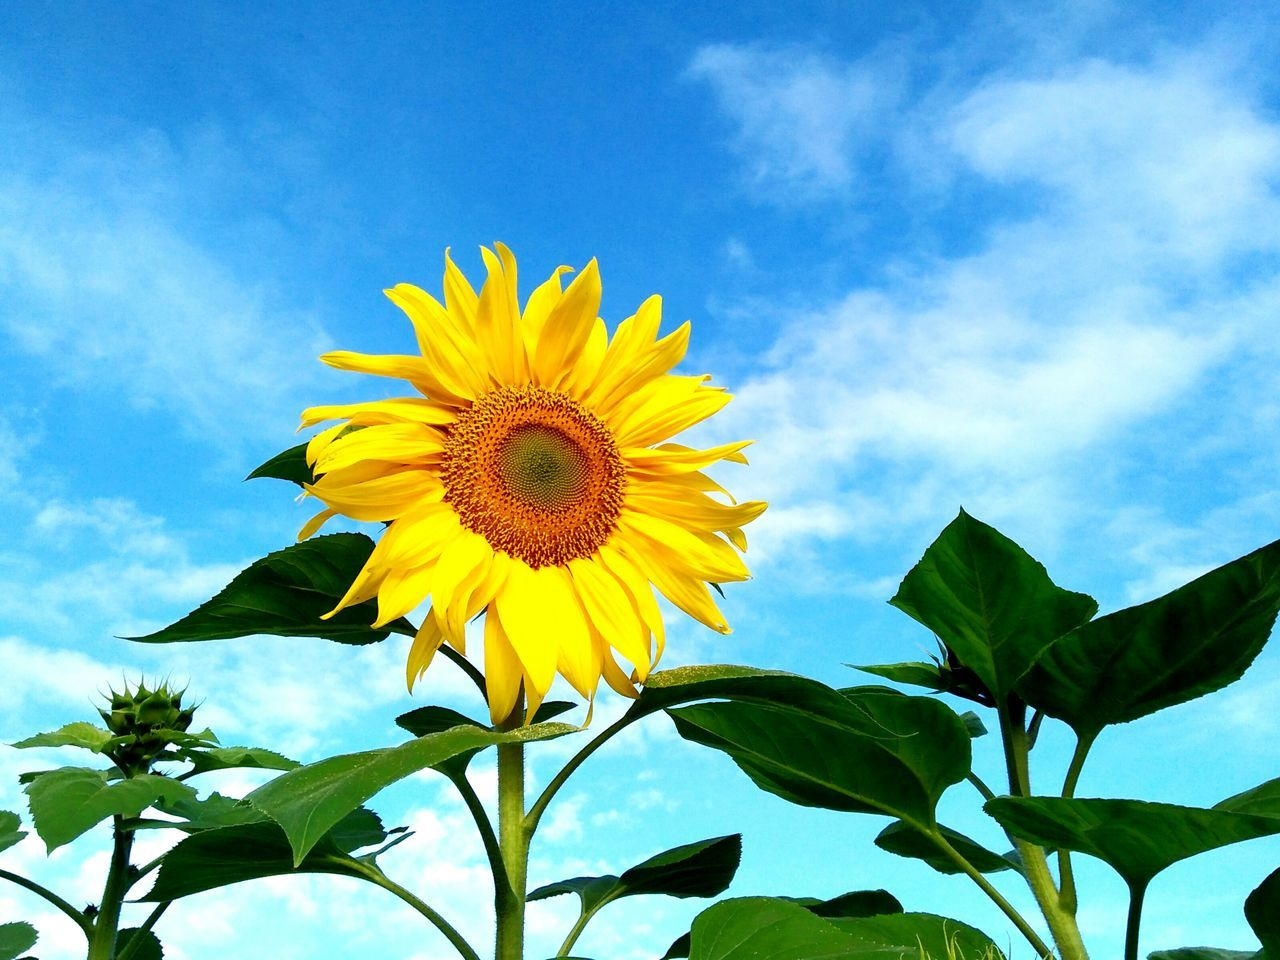 Sunflower Yellow Flower Beauty In Nature Outdoors Manila Philippines